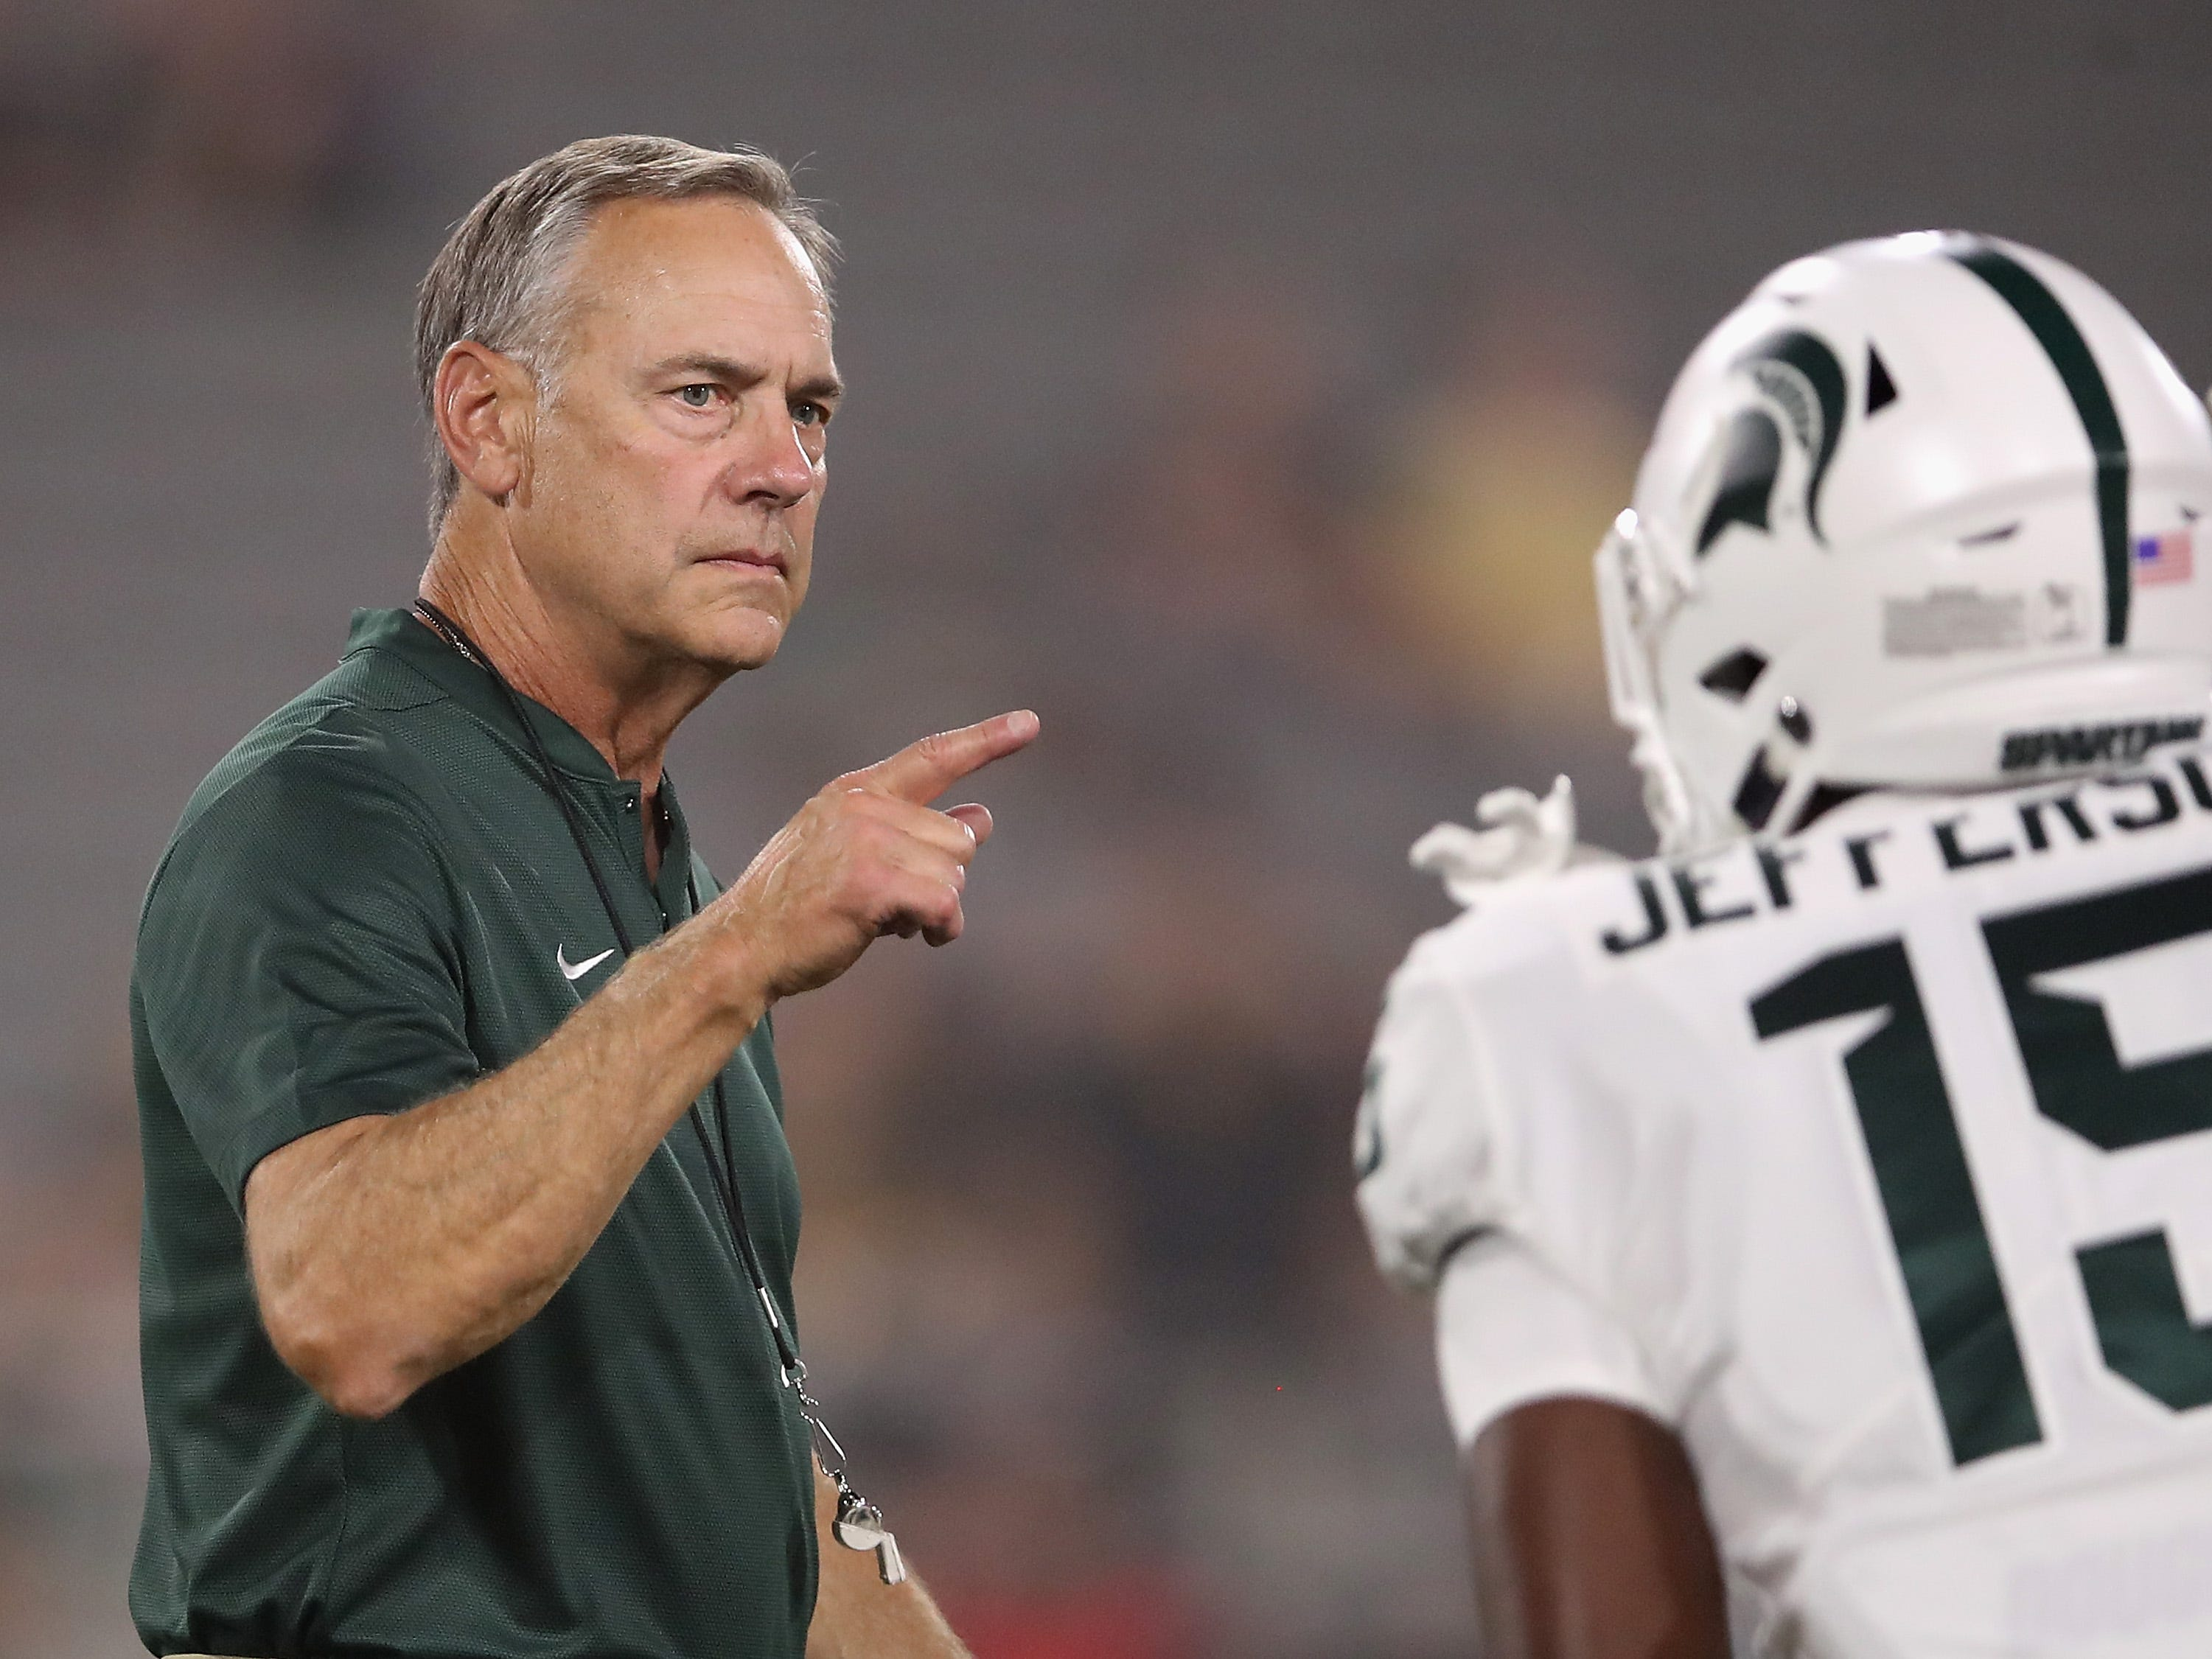 6. Michigan State (1-1) – It was an off-week for the Spartans, which at least offered them the chance to avoid some of the losses the rest of the conference took. Getting past last week's loss at Arizona State and mending a few injuries will be vital as the Spartans open Big Ten play this week at Indiana. Last week: 6.